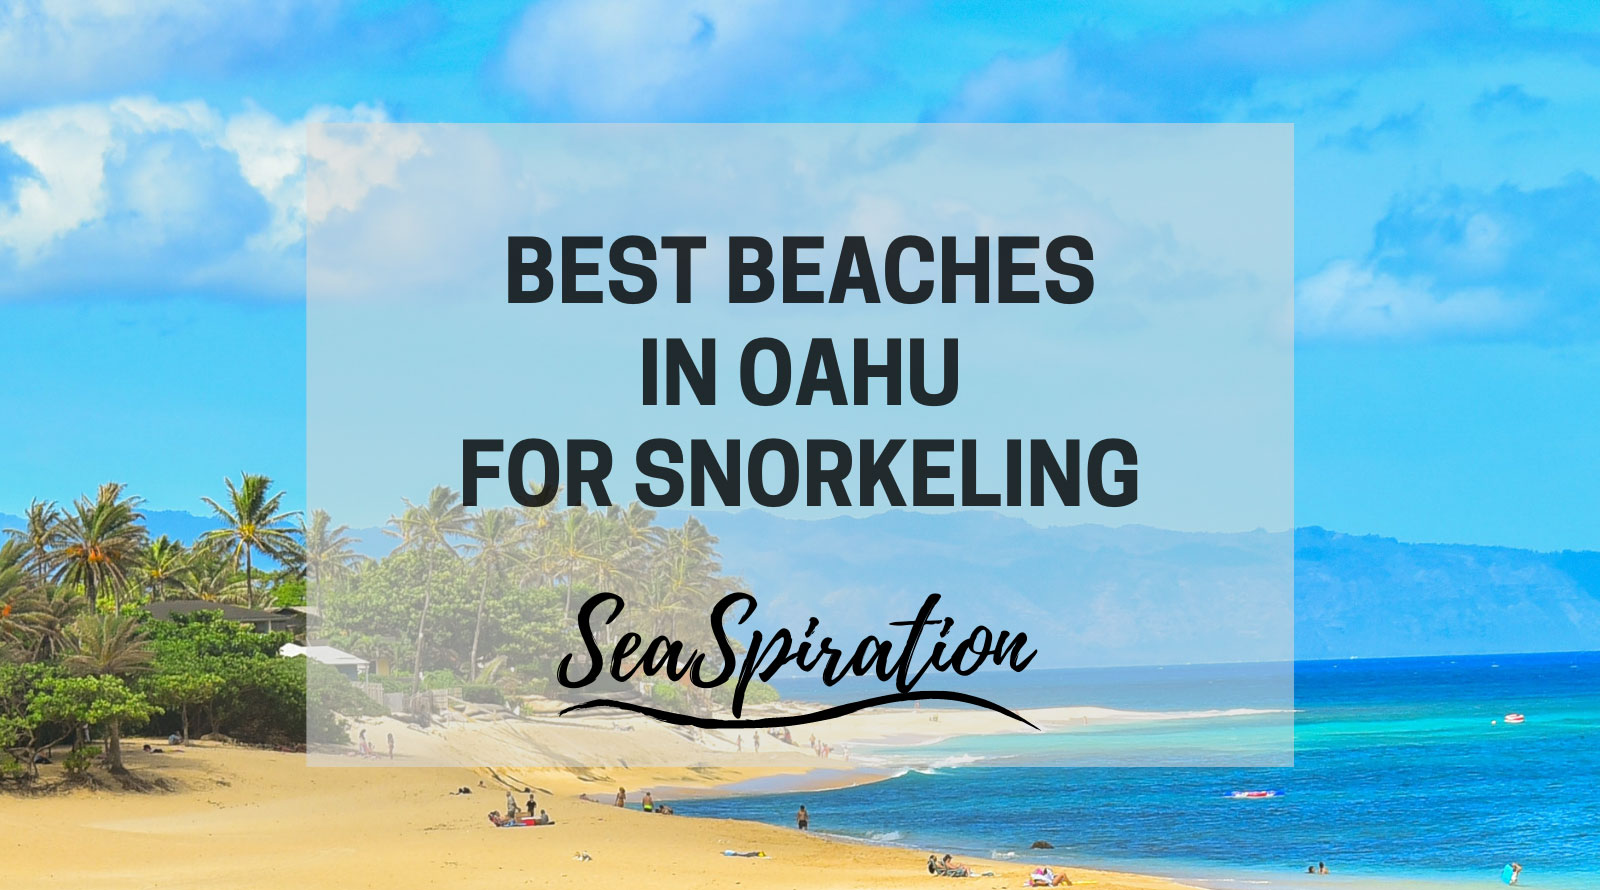 Best beaches in Oahu for snorkeling